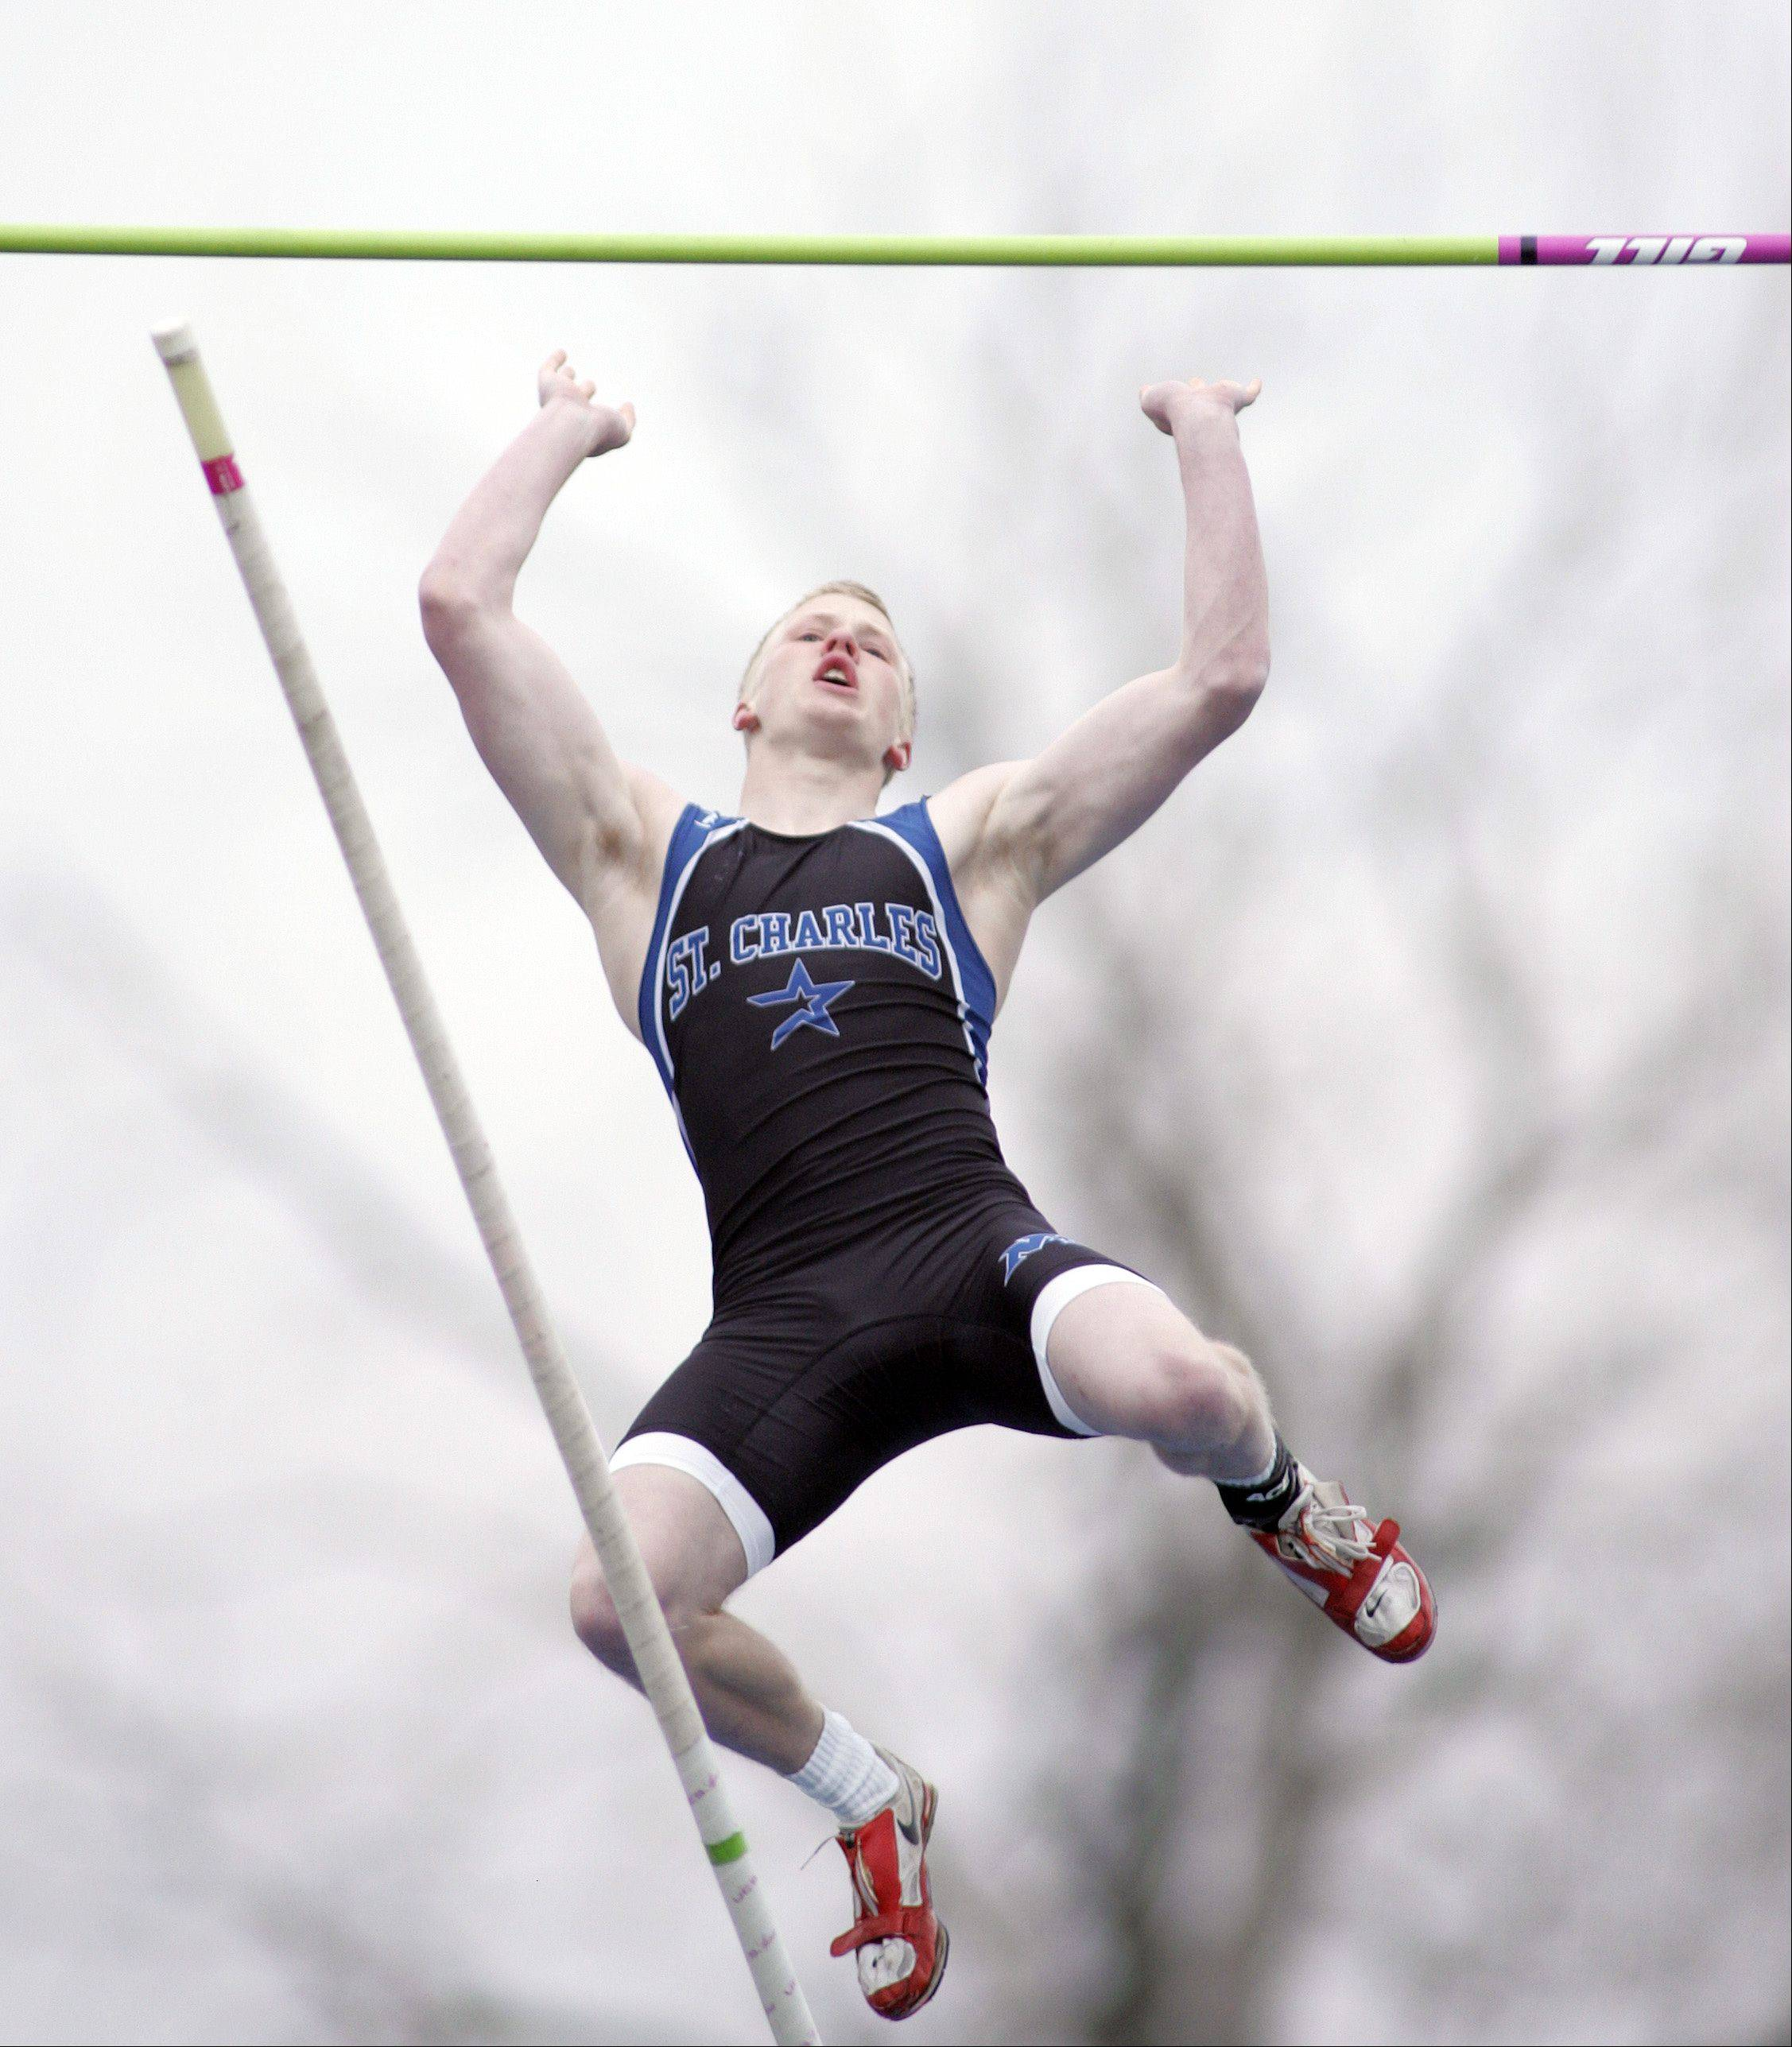 Kaleb Kirby of St. Charles North competes in the pole vault during the Kane County boys track meet Friday at Burlington Central.